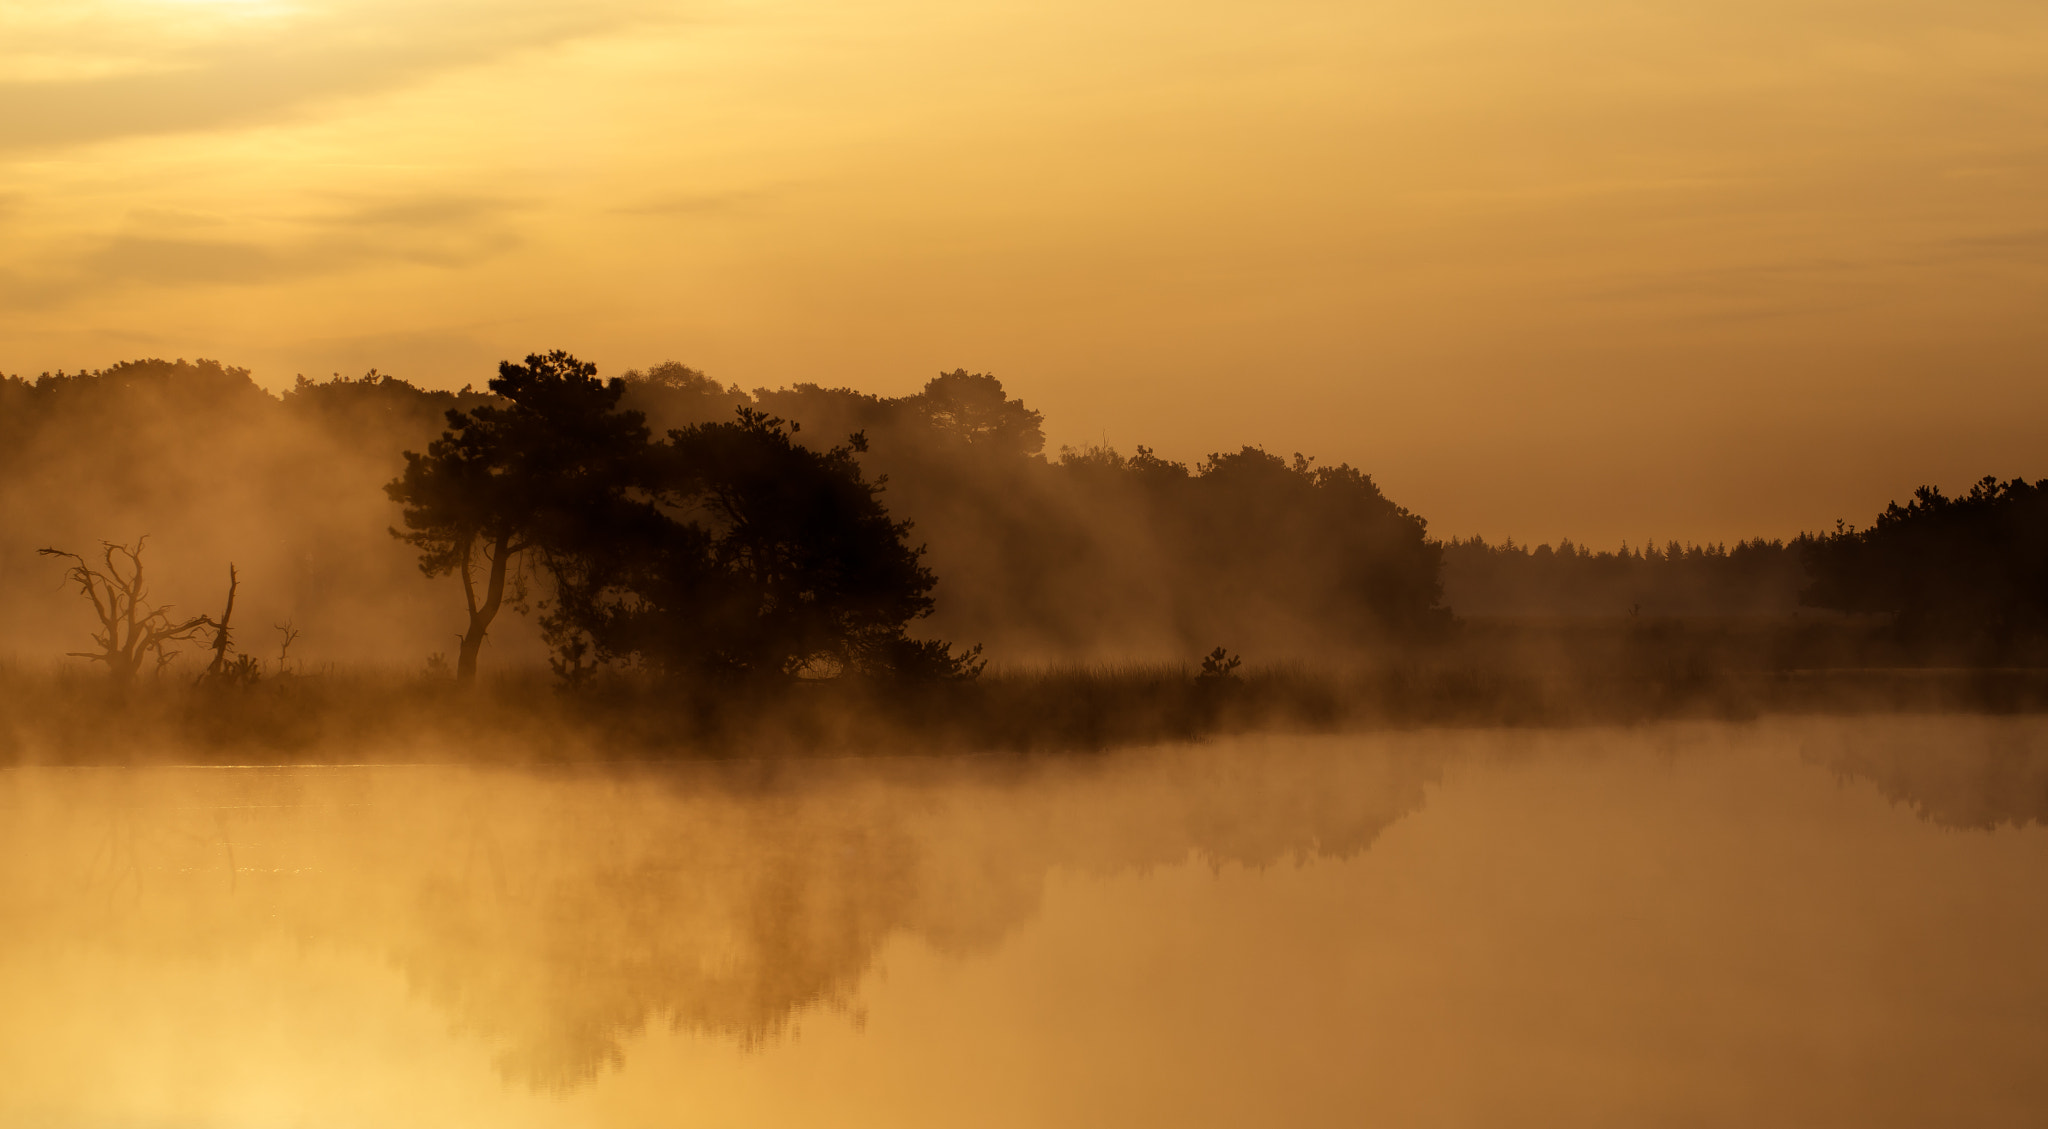 Photograph Strabrechtse Heide 110 by Mr. DESHAMER on 500px